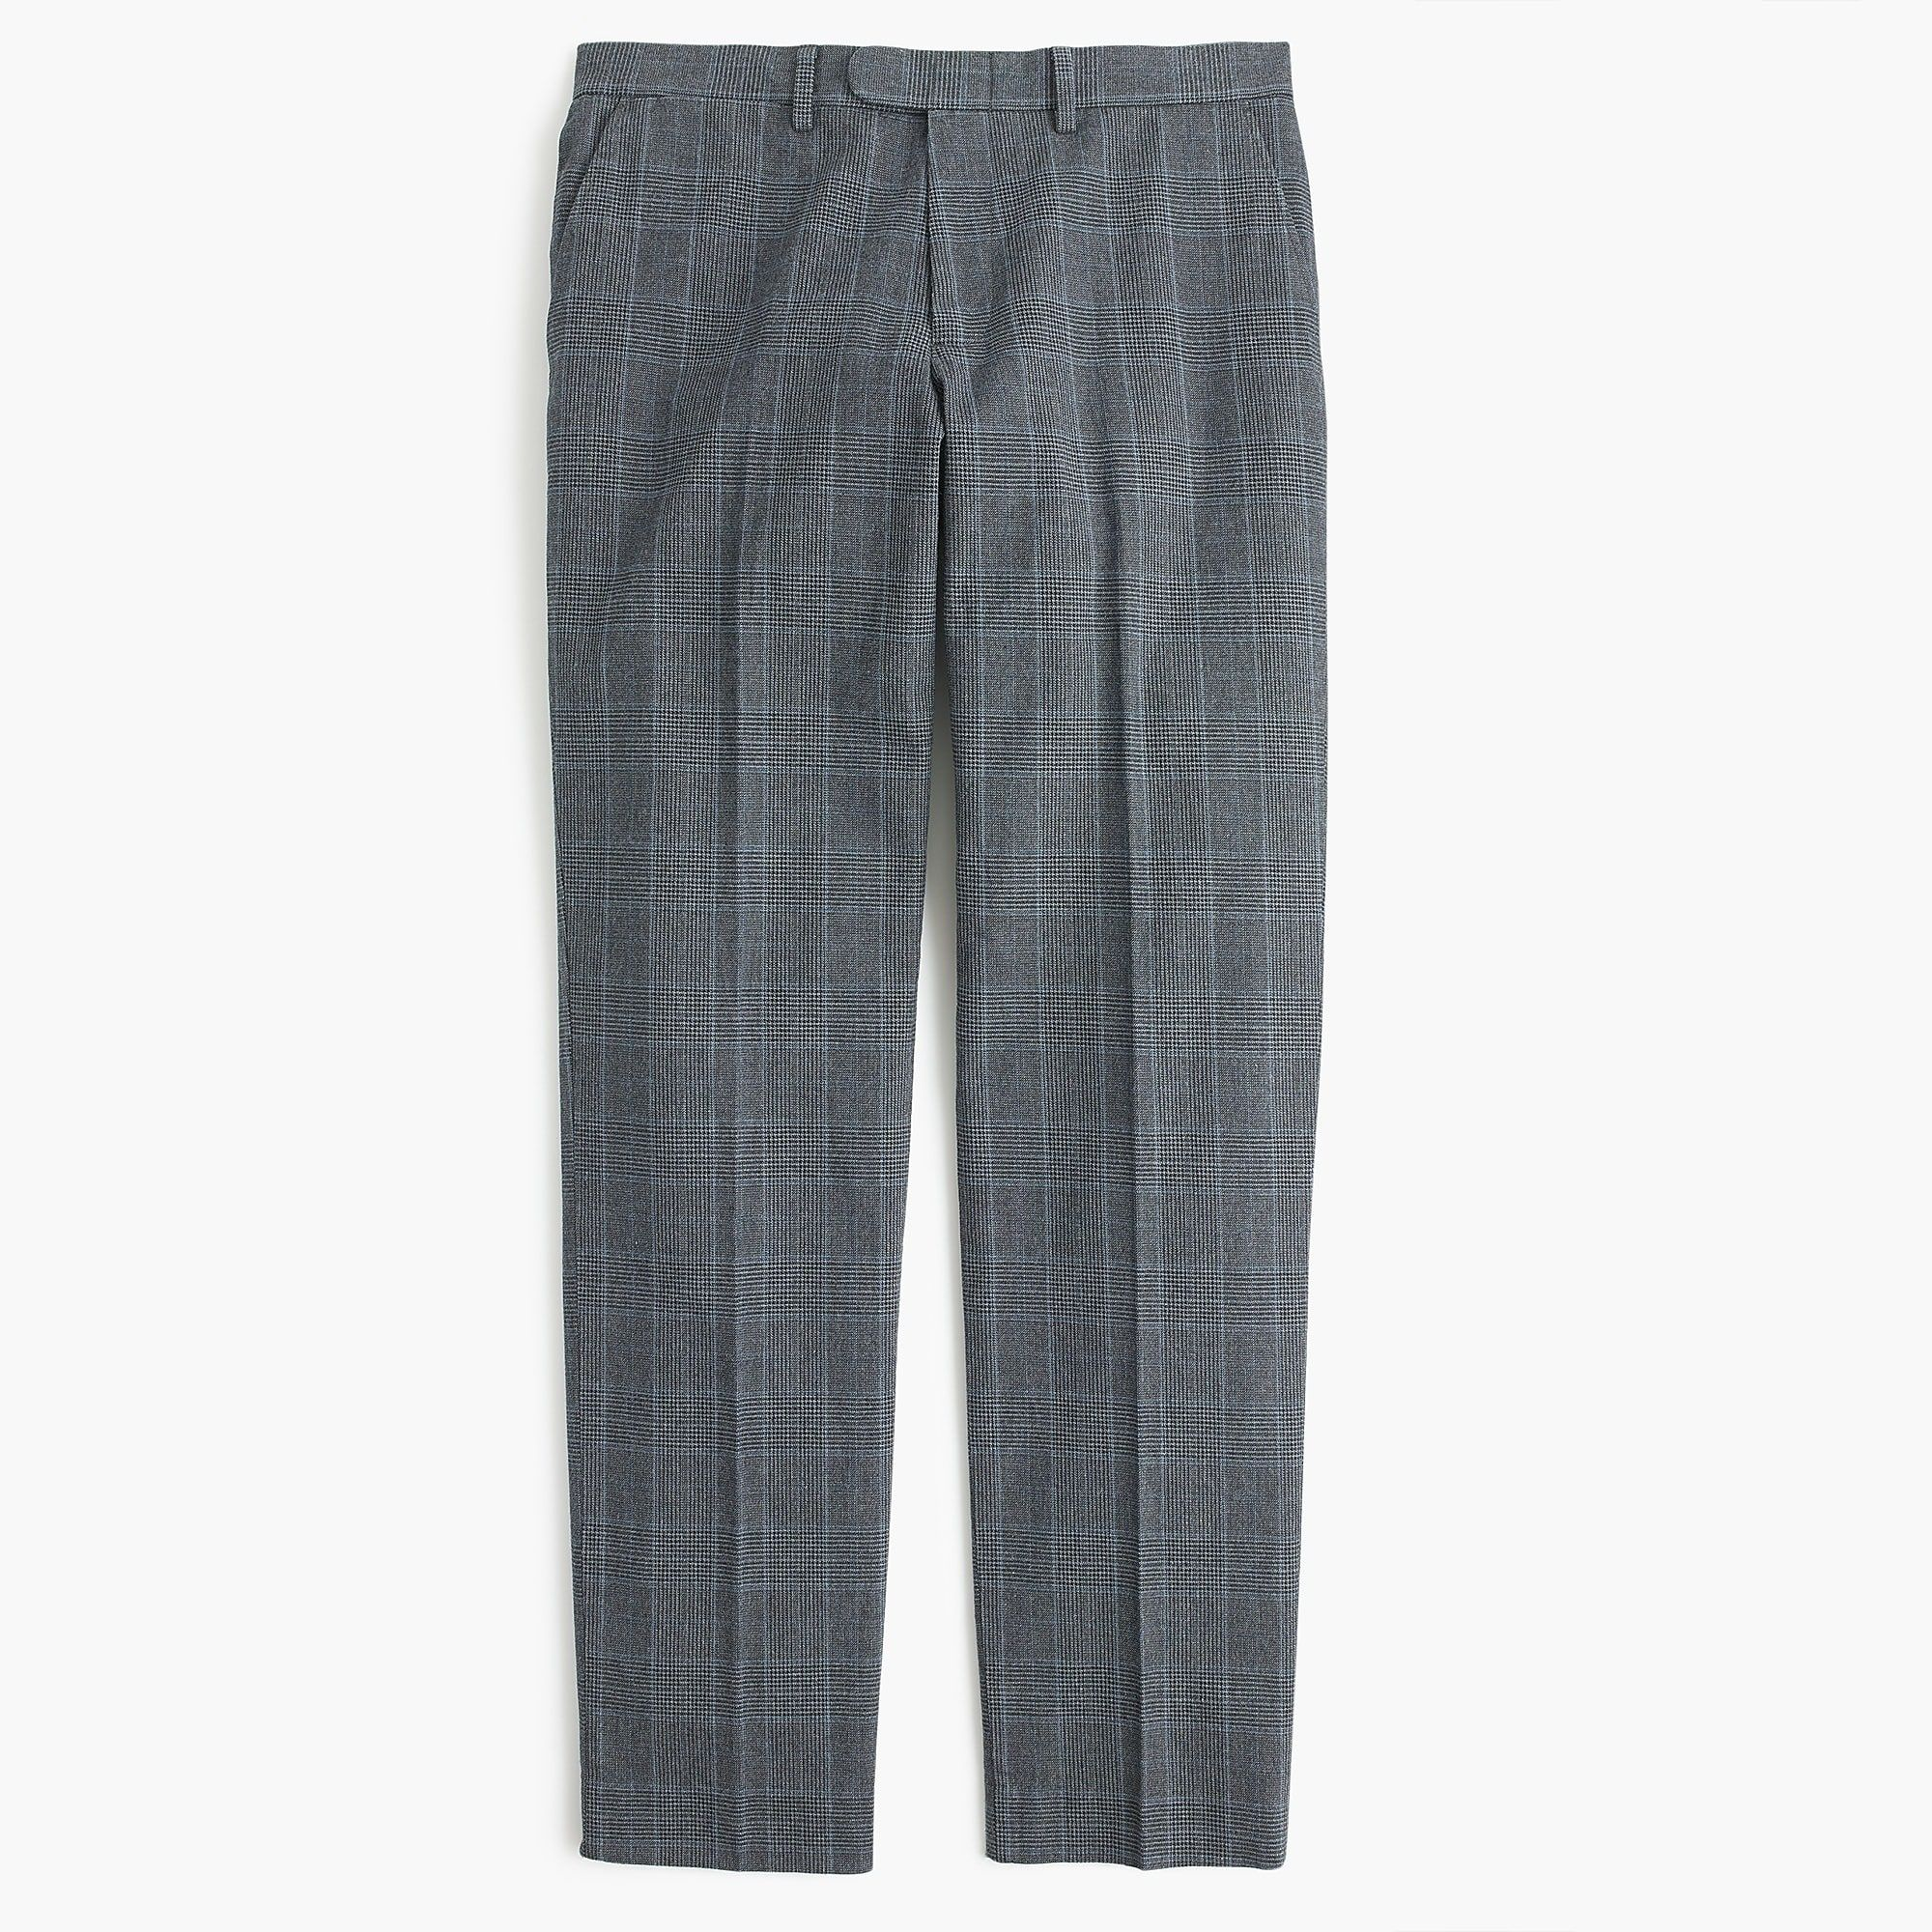 e6a36d4398e Men's Ludlow Slim-Fit Pant In Glen Plaid Cotton - Men's Pants | J.Crew